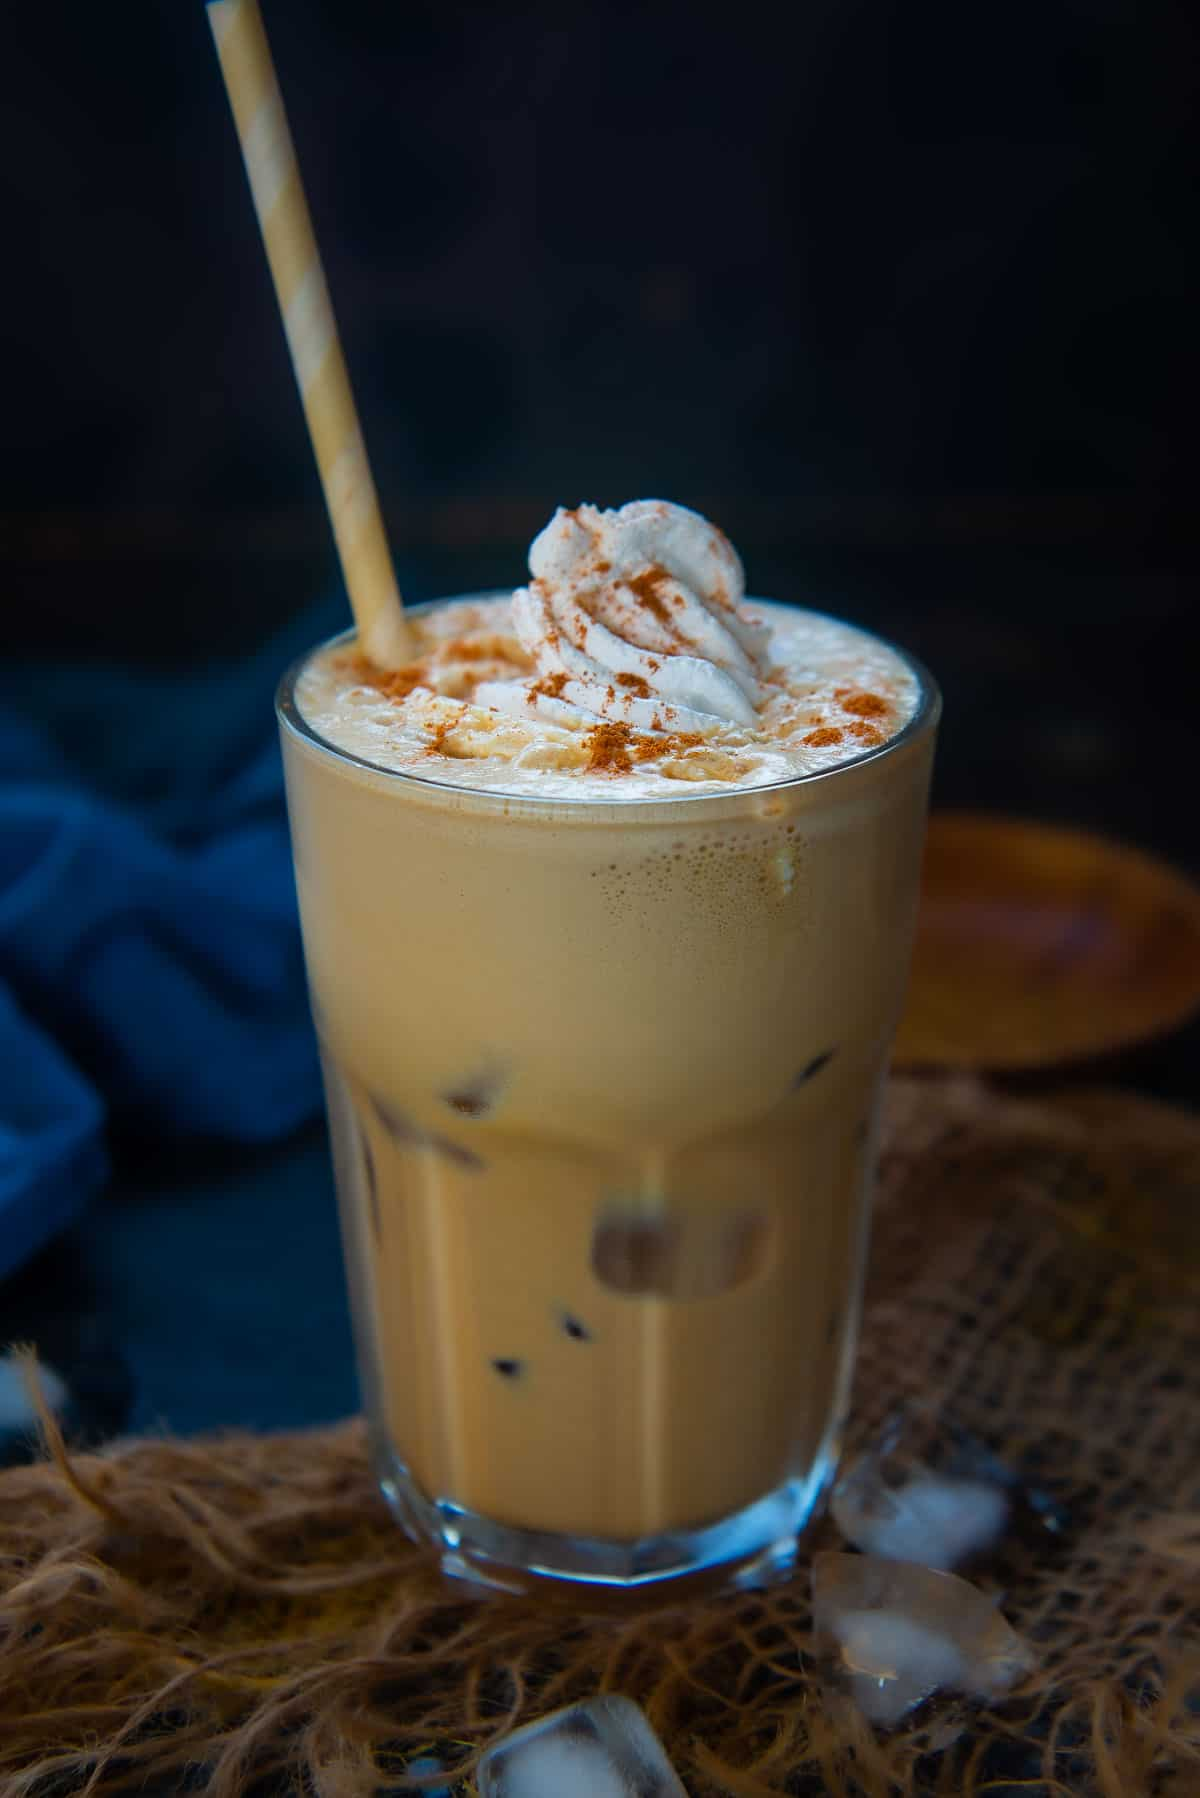 Iced Pumpkin Spice Latte served in a glass.